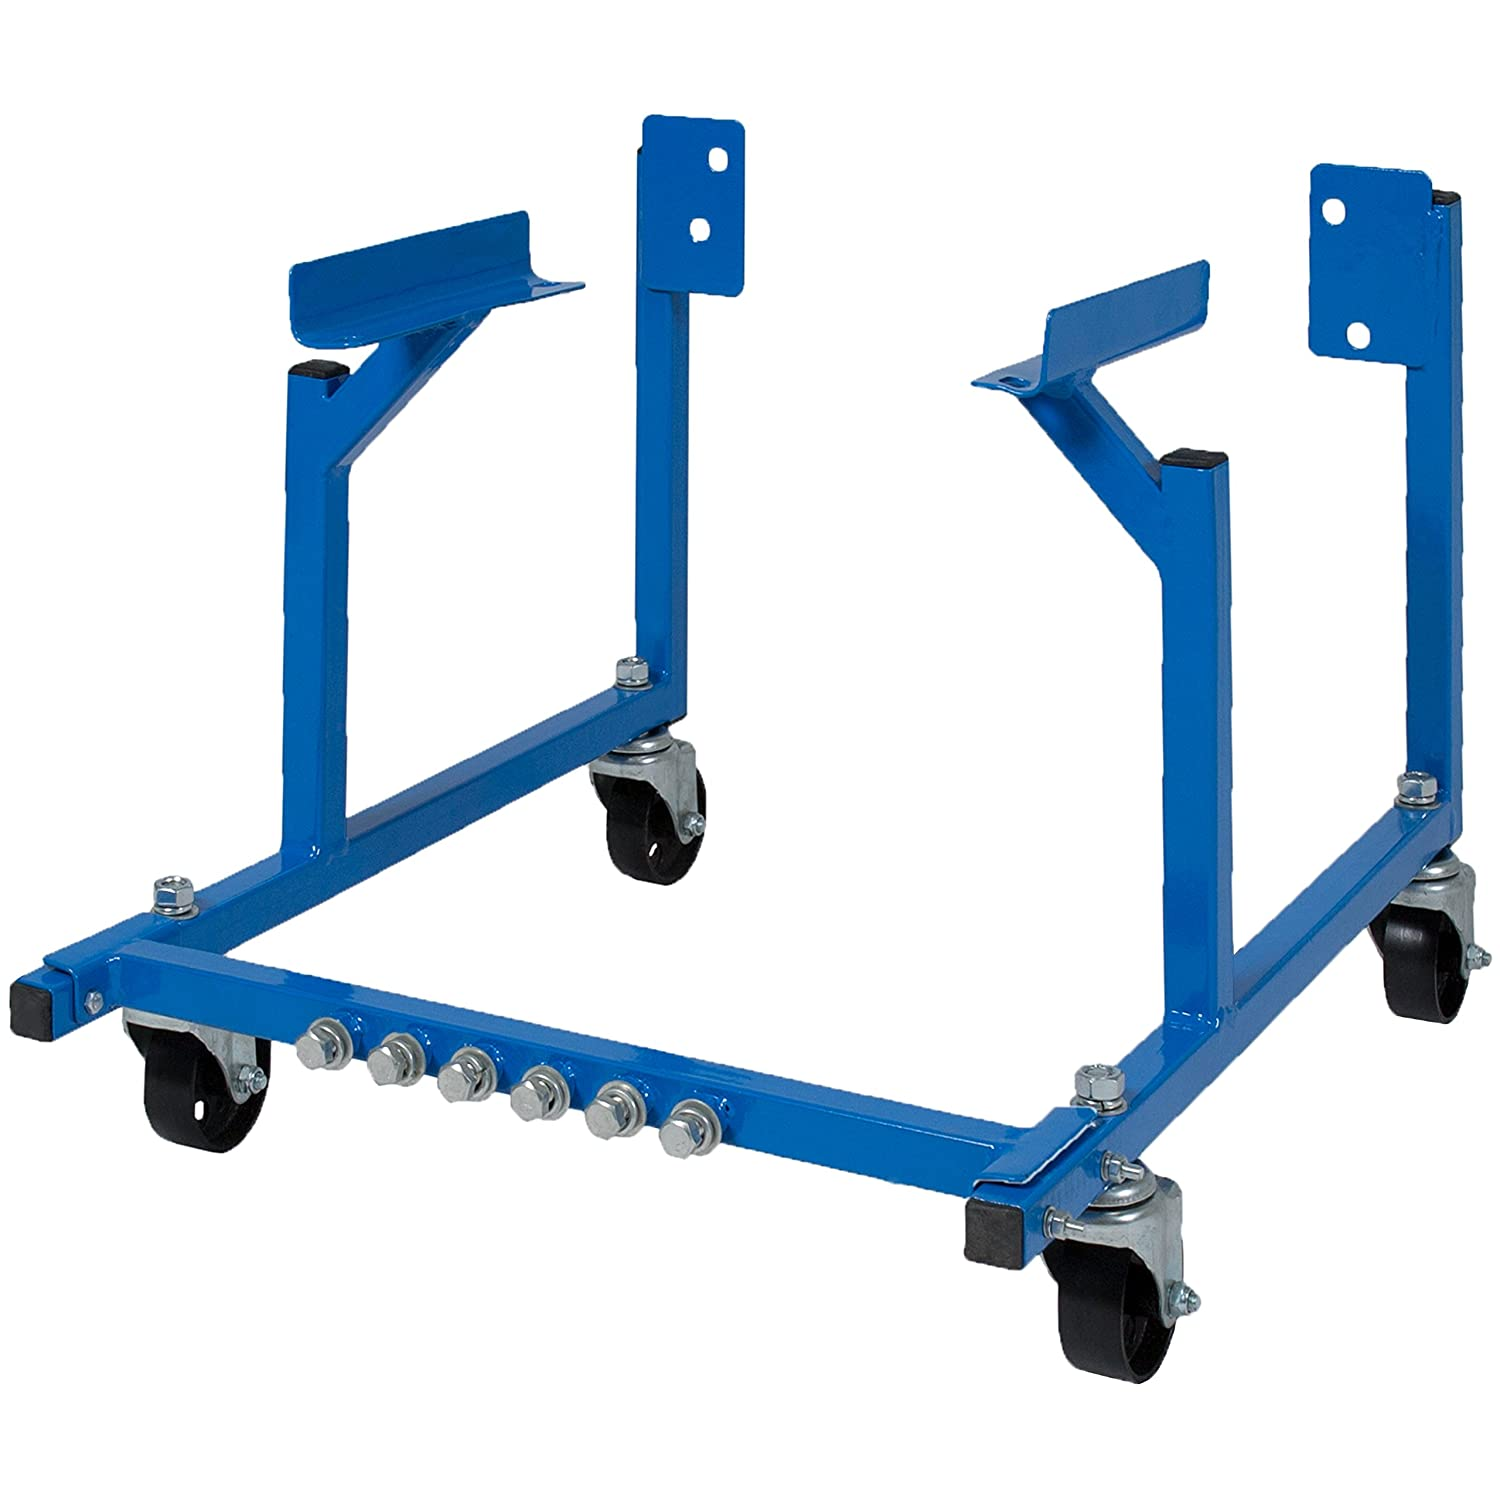 Best Choice Products 1000lb Steel Automobile Vehicle Engine Cradle Stand Dolly Mover for Repair, Rebuild w/Wheels